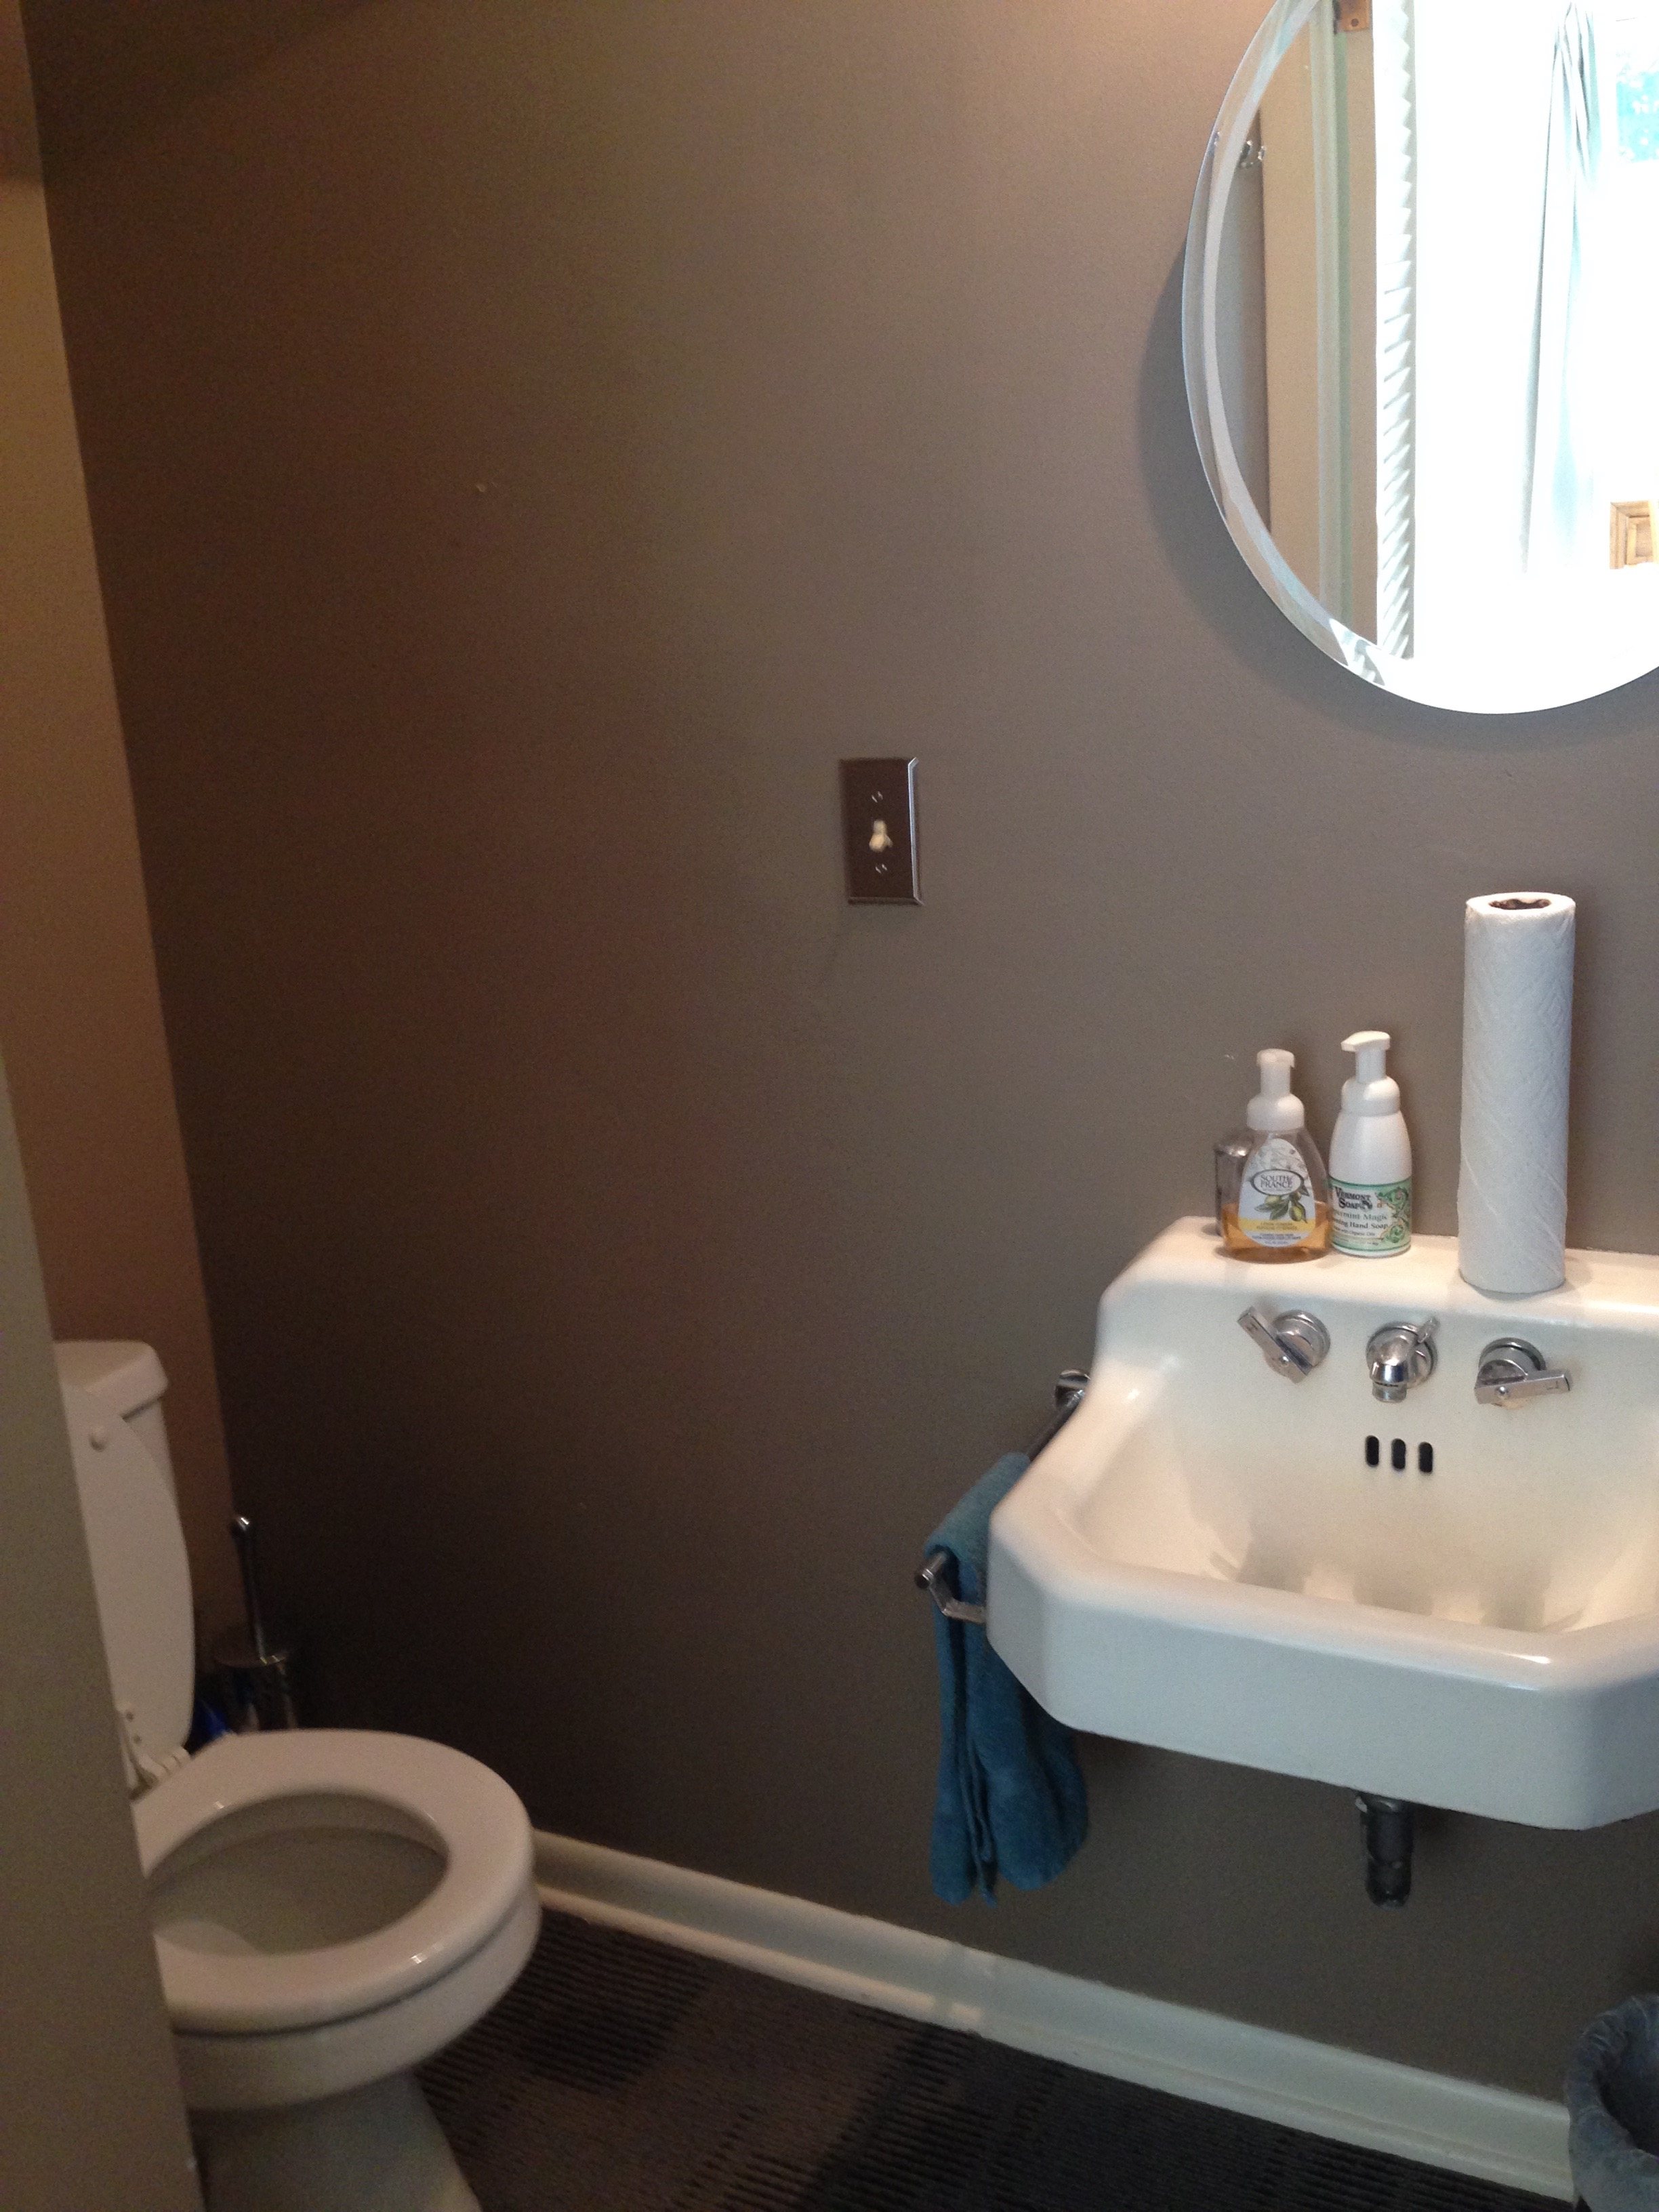 1/2 bath attached to private bedroom.